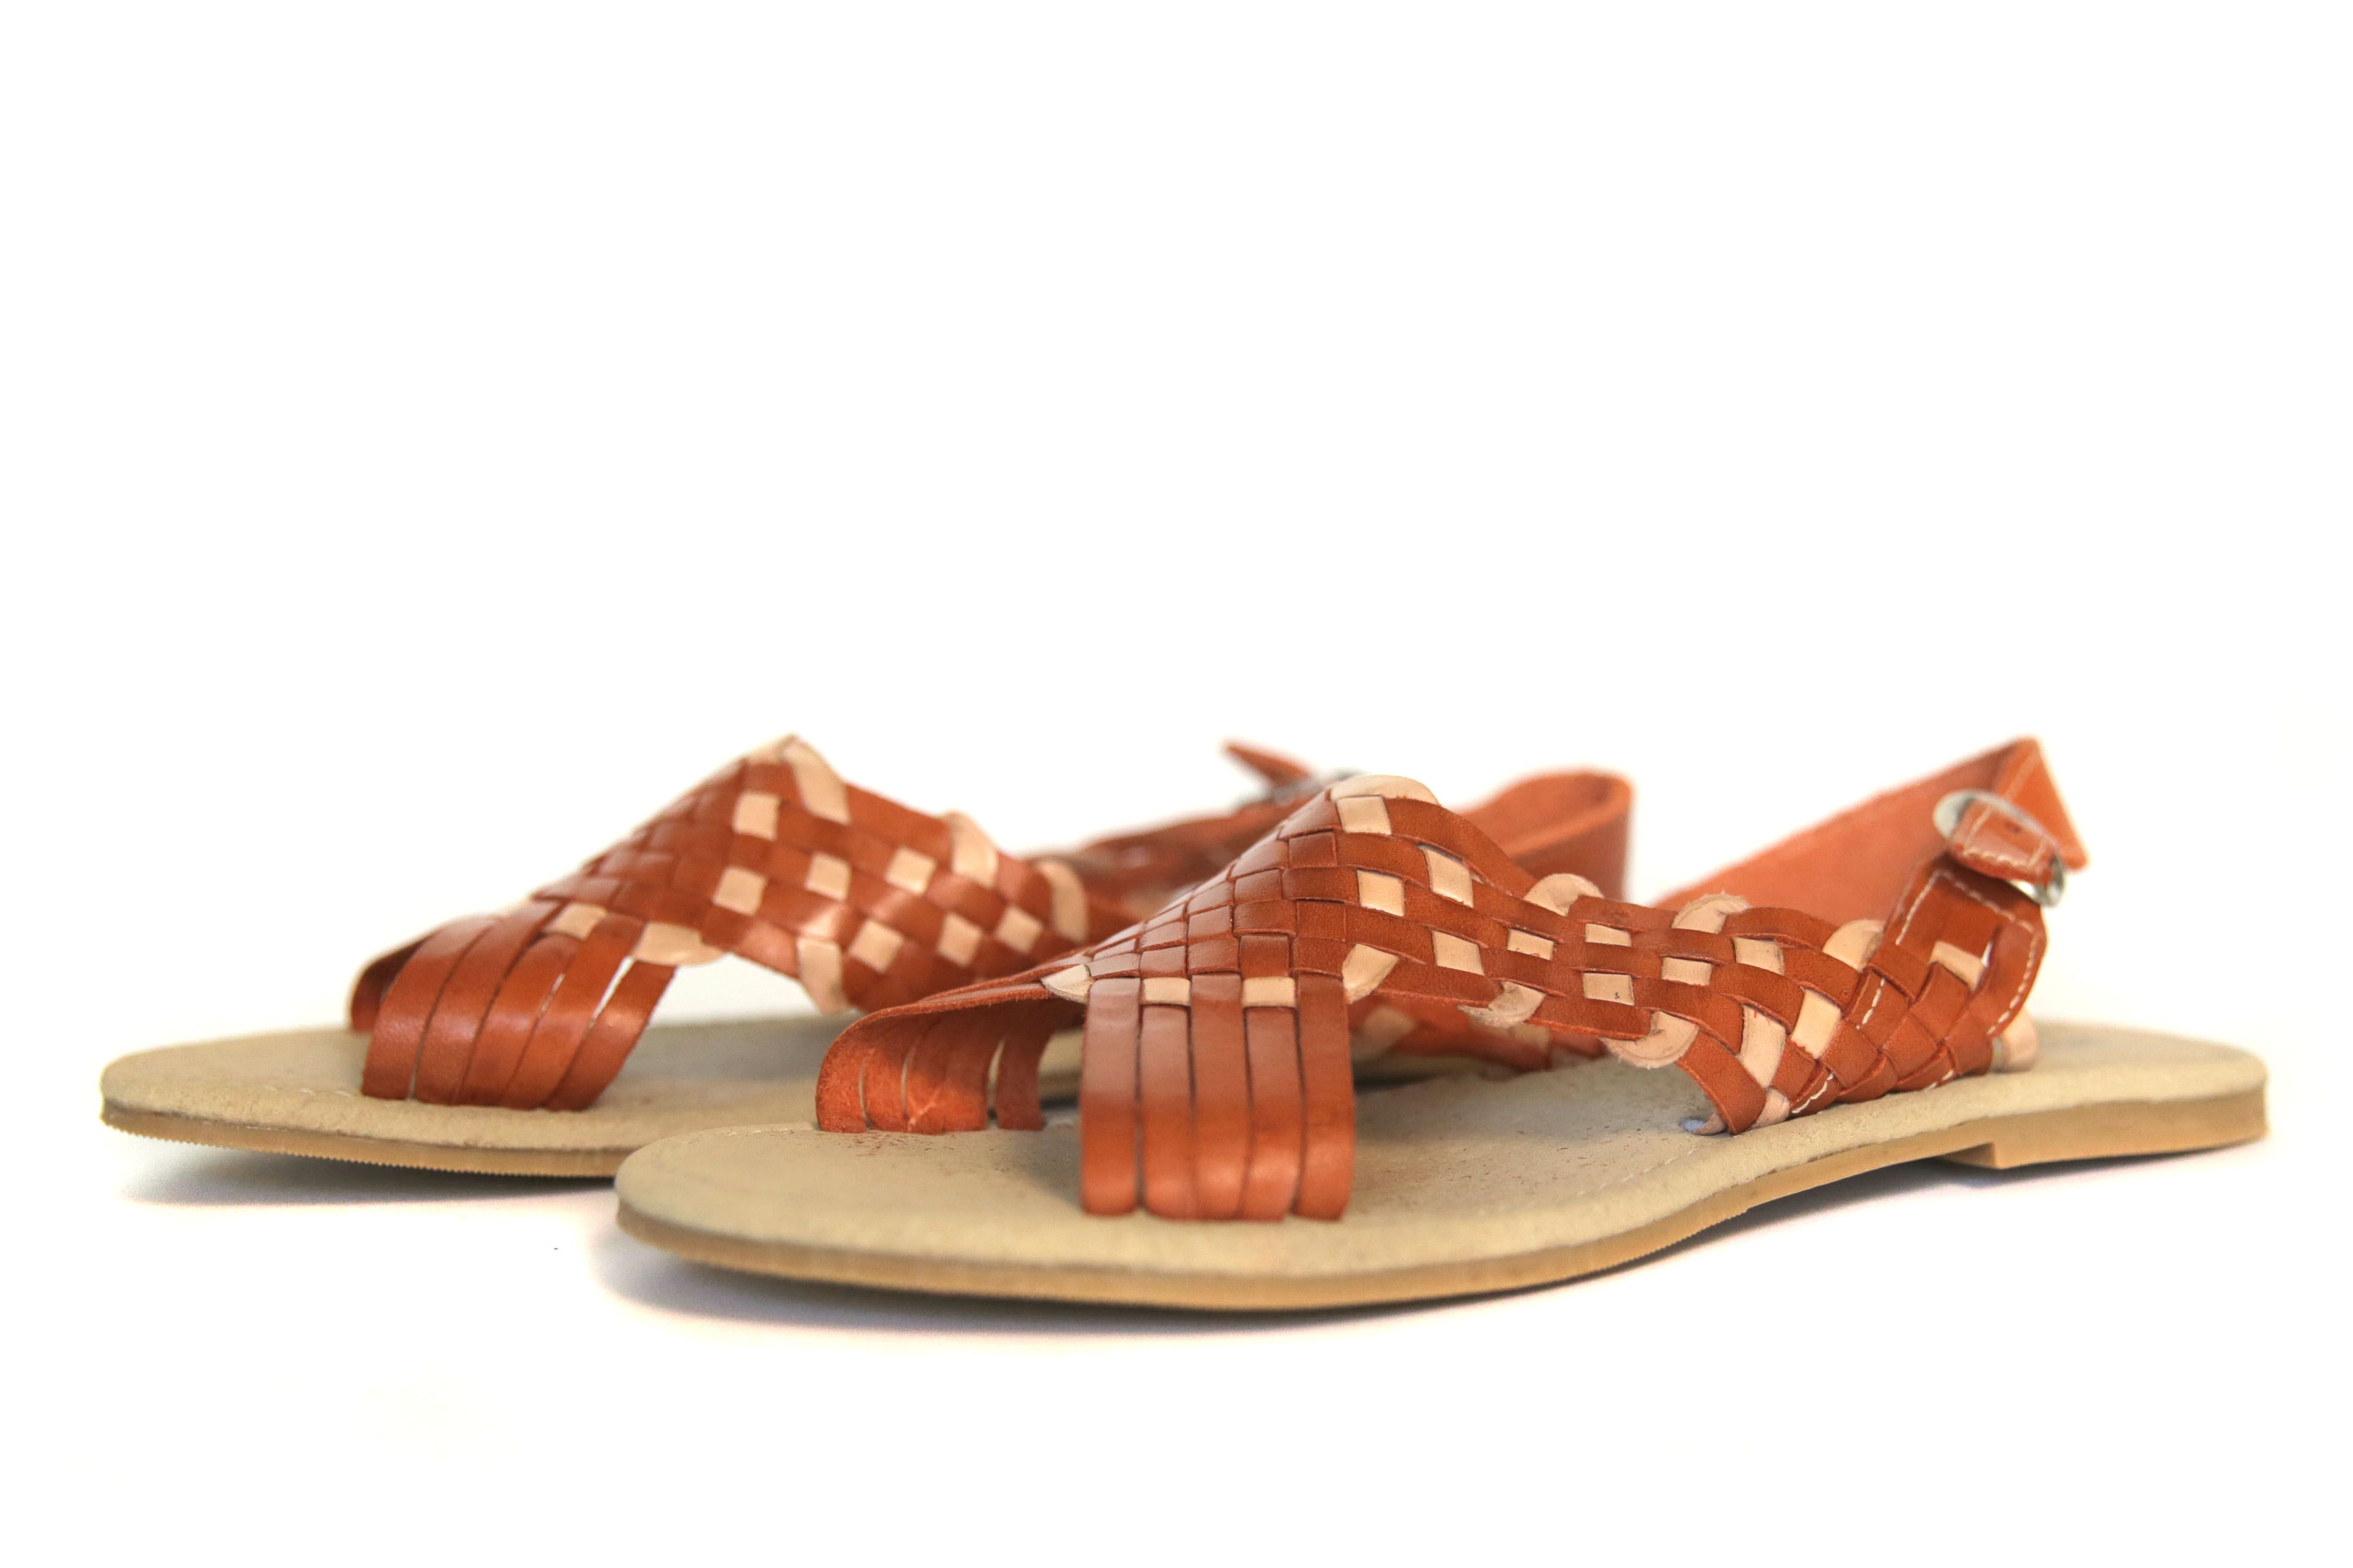 01d4786415a0 Women s Serendipia Open Toe Huarache Sandals - Orange Creme A stylish and  unique checkered pattern make the Serendipia style huarache sandals a  handwoven ...